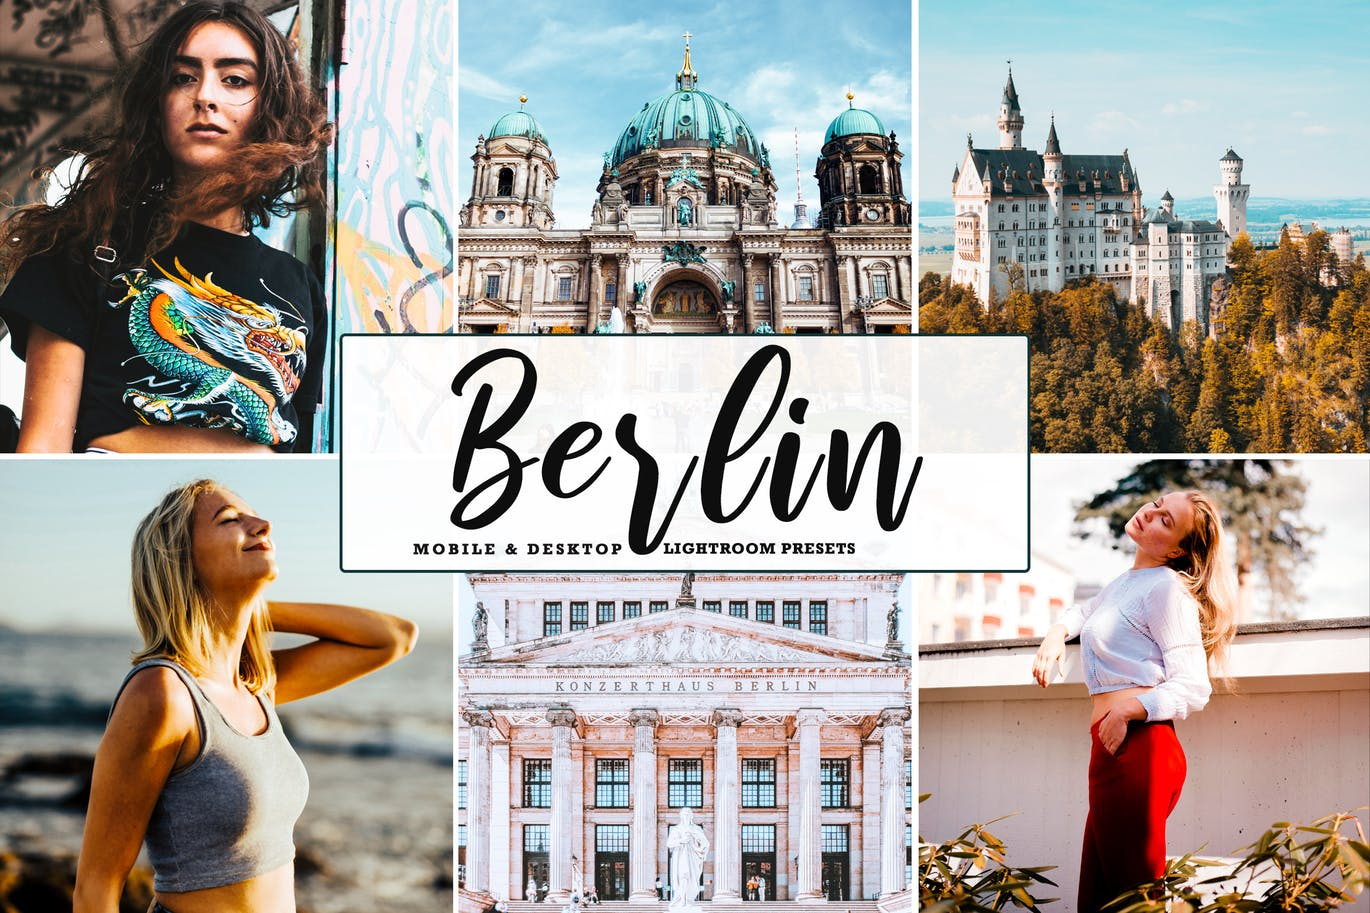 Berlin Mobile & Desktop Lightroom Presets